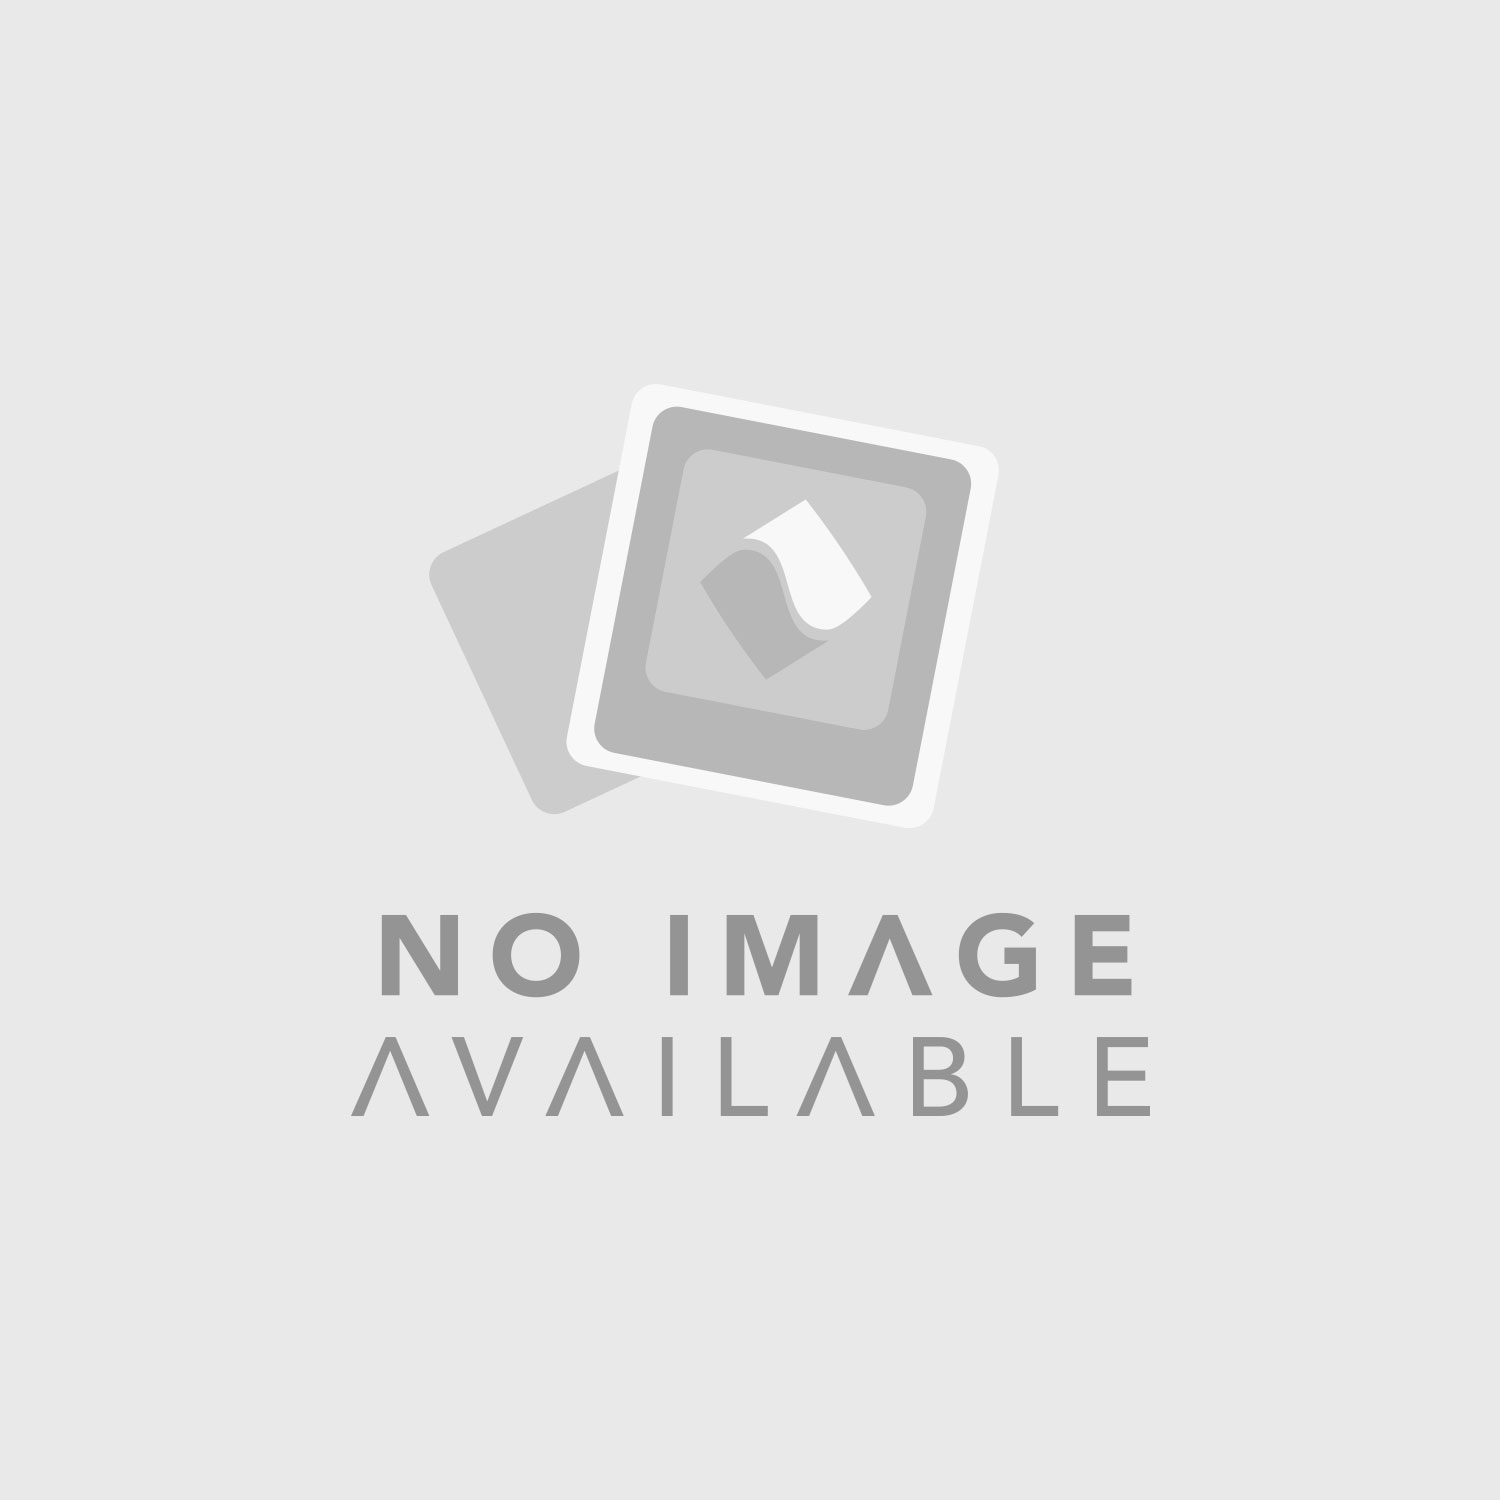 Froggys Fog Backwood Bay Fog Juice (1 Gallon)